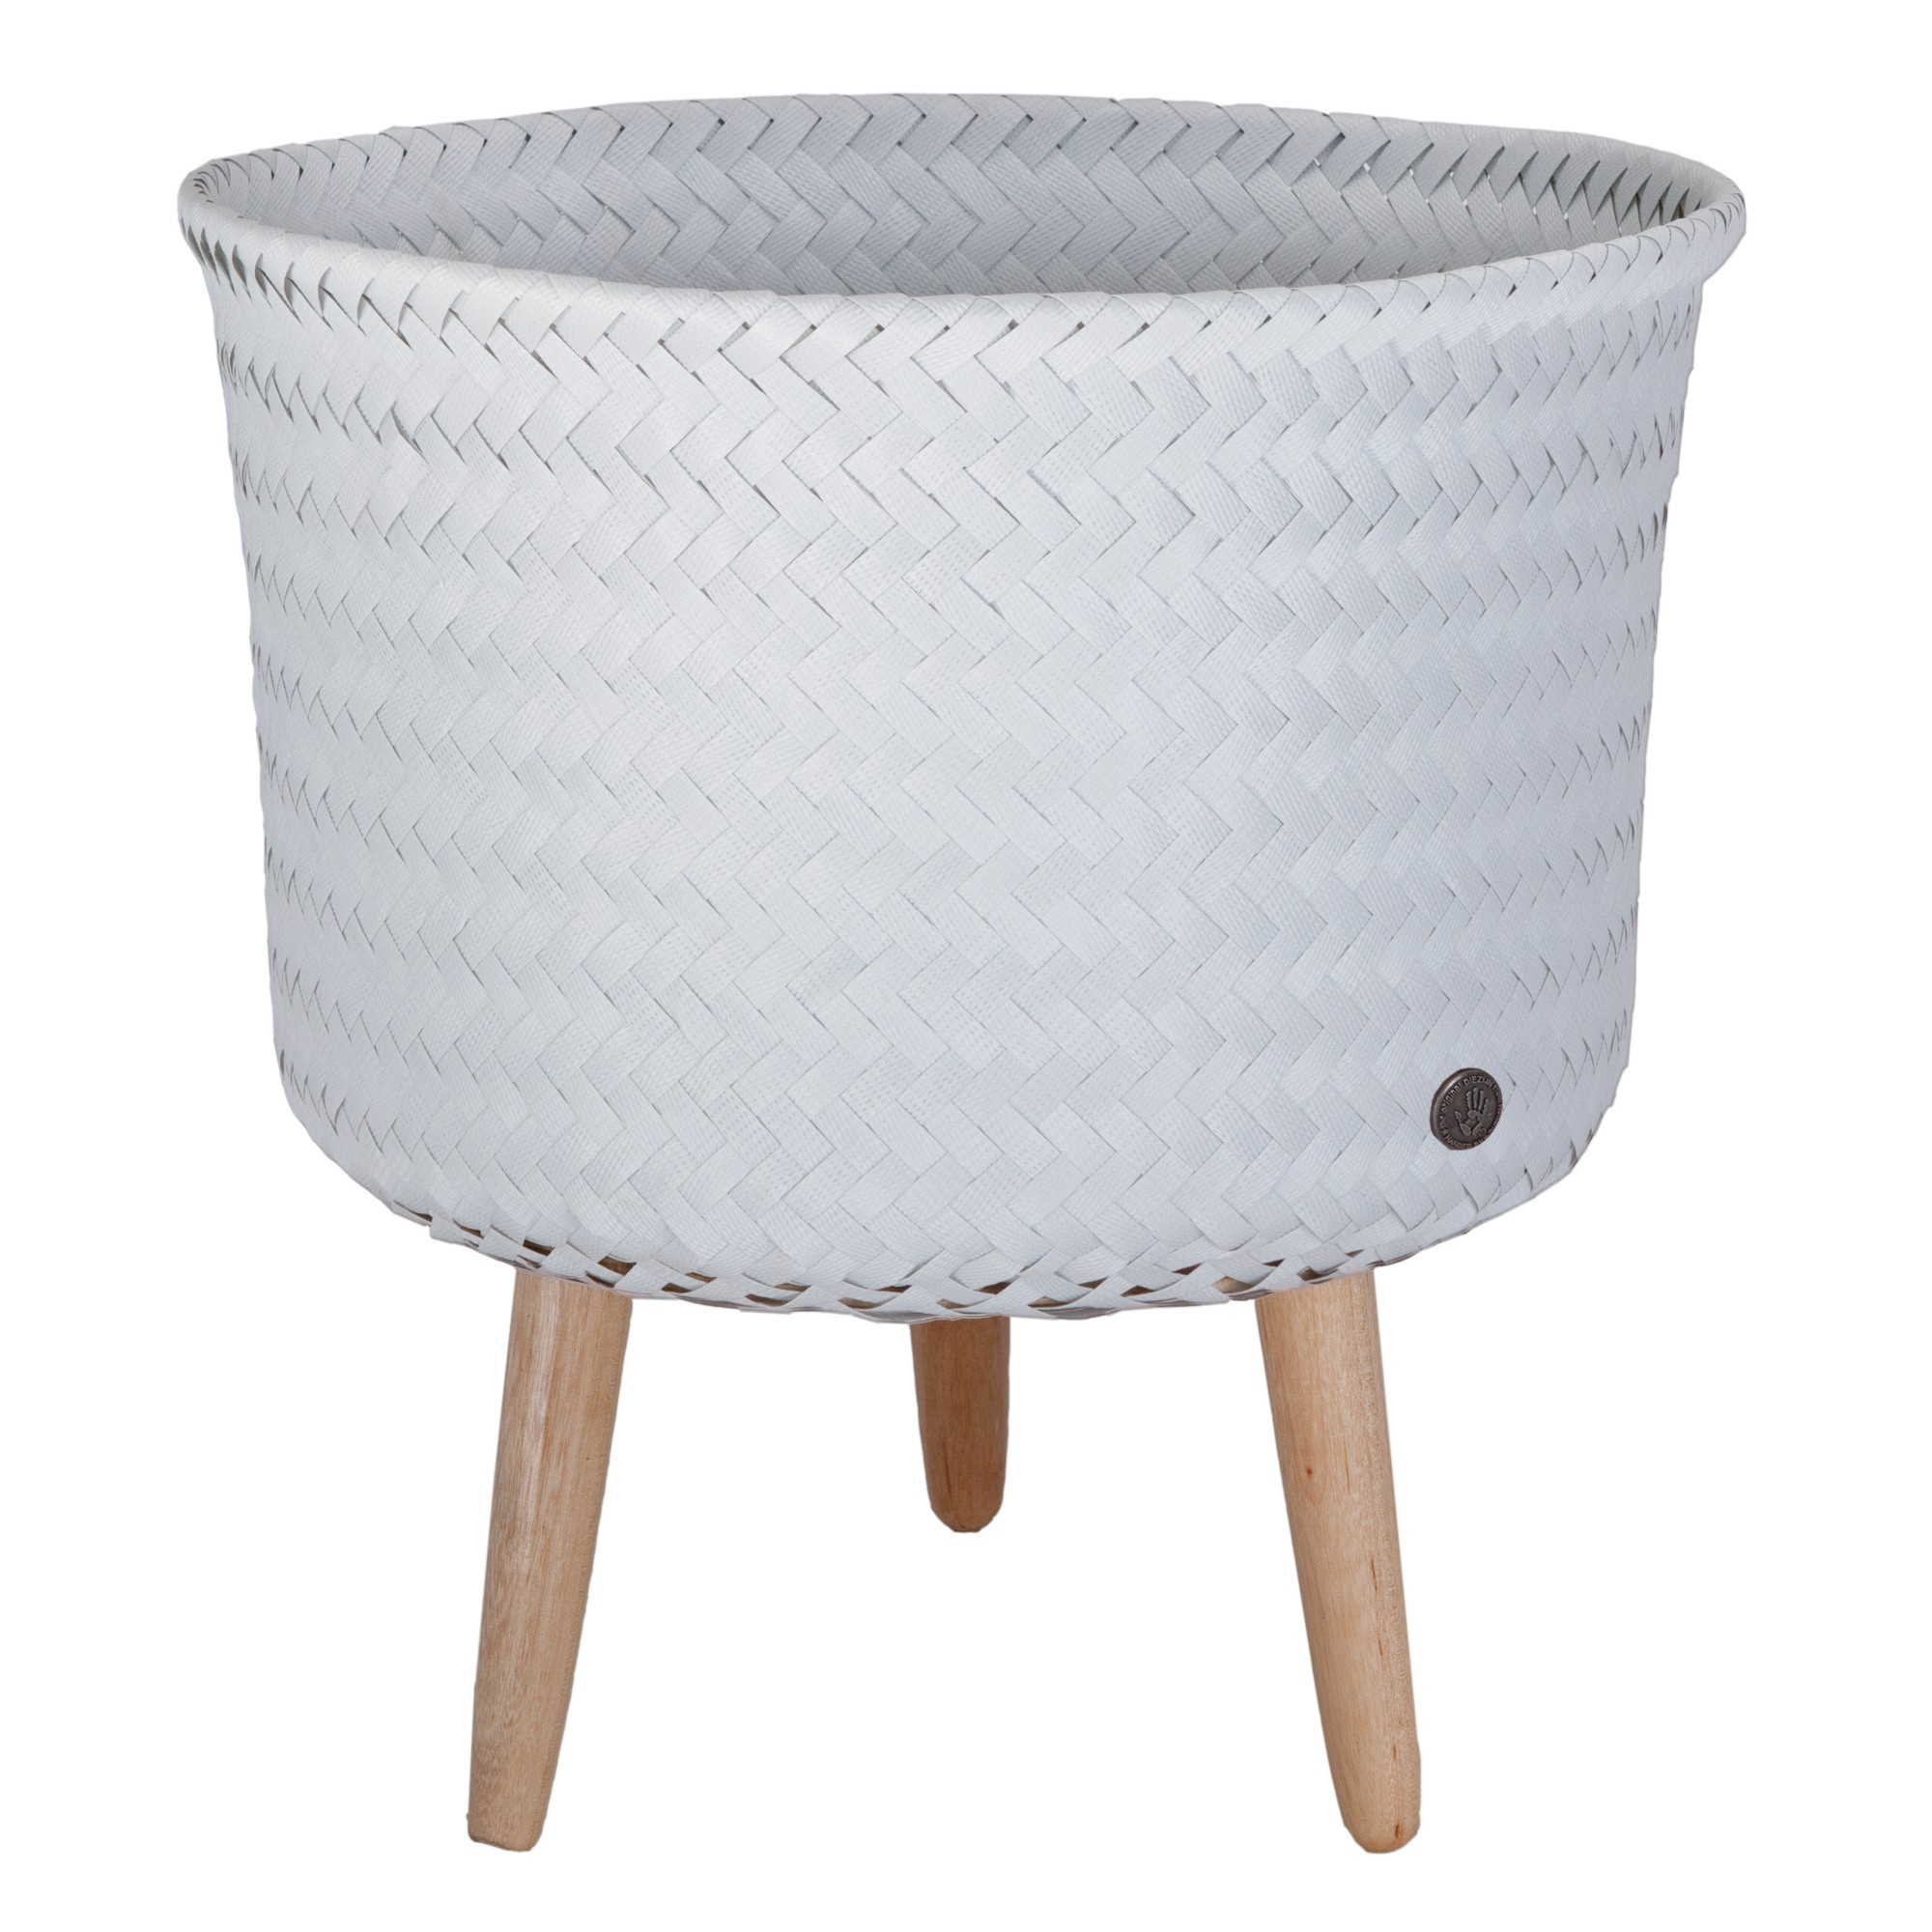 Handed By Basket Up Mid flint grey-8718439078195-33